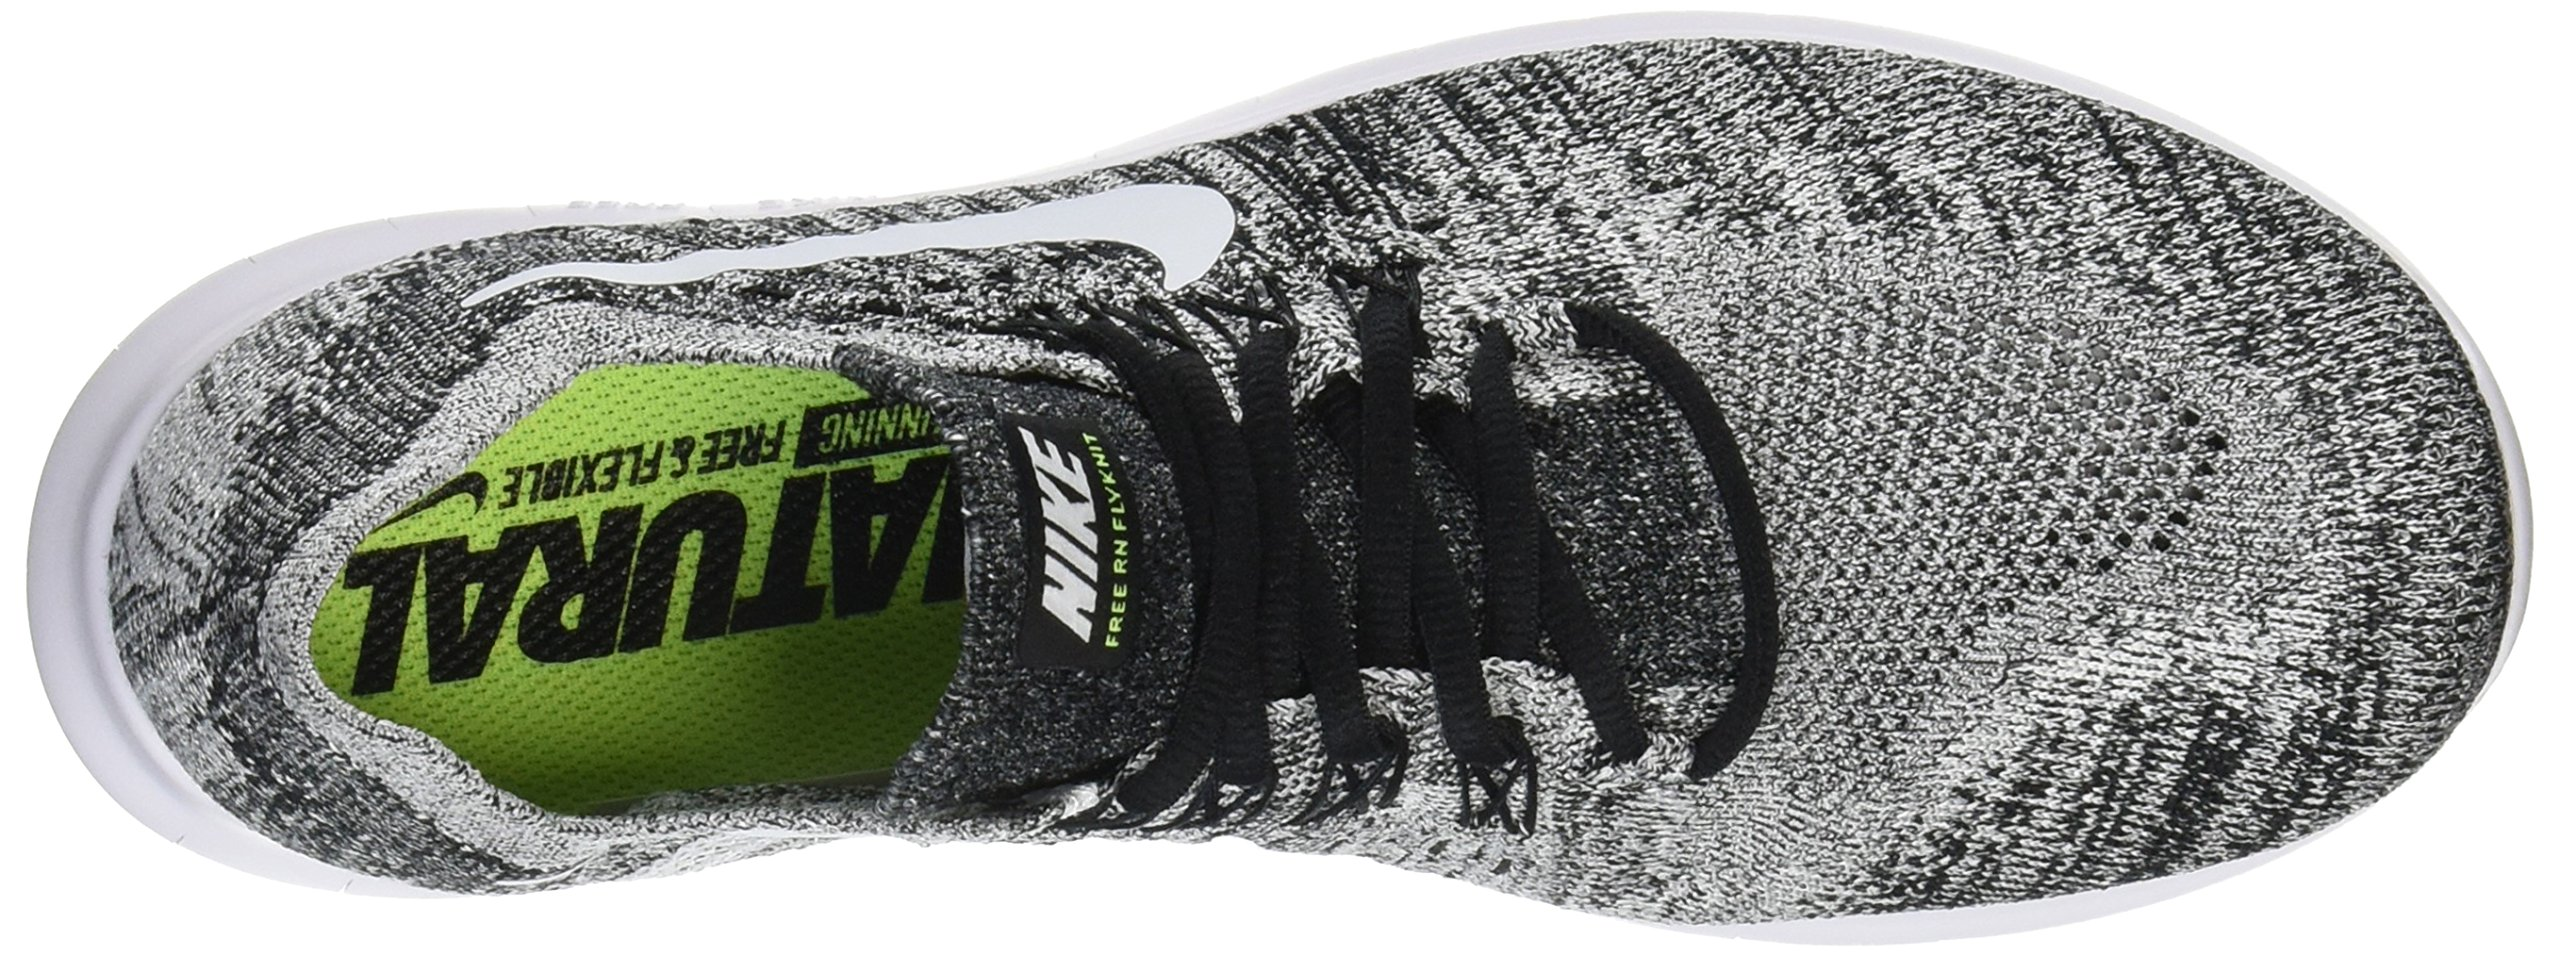 sale retailer c32df e05cf NIKE Men s Free RN Flyknit 2017 Black White Running Shoes (10, Black White-Volt)  - 880843 003   Basketball   Clothing, Shoes   Jewelry - tibs